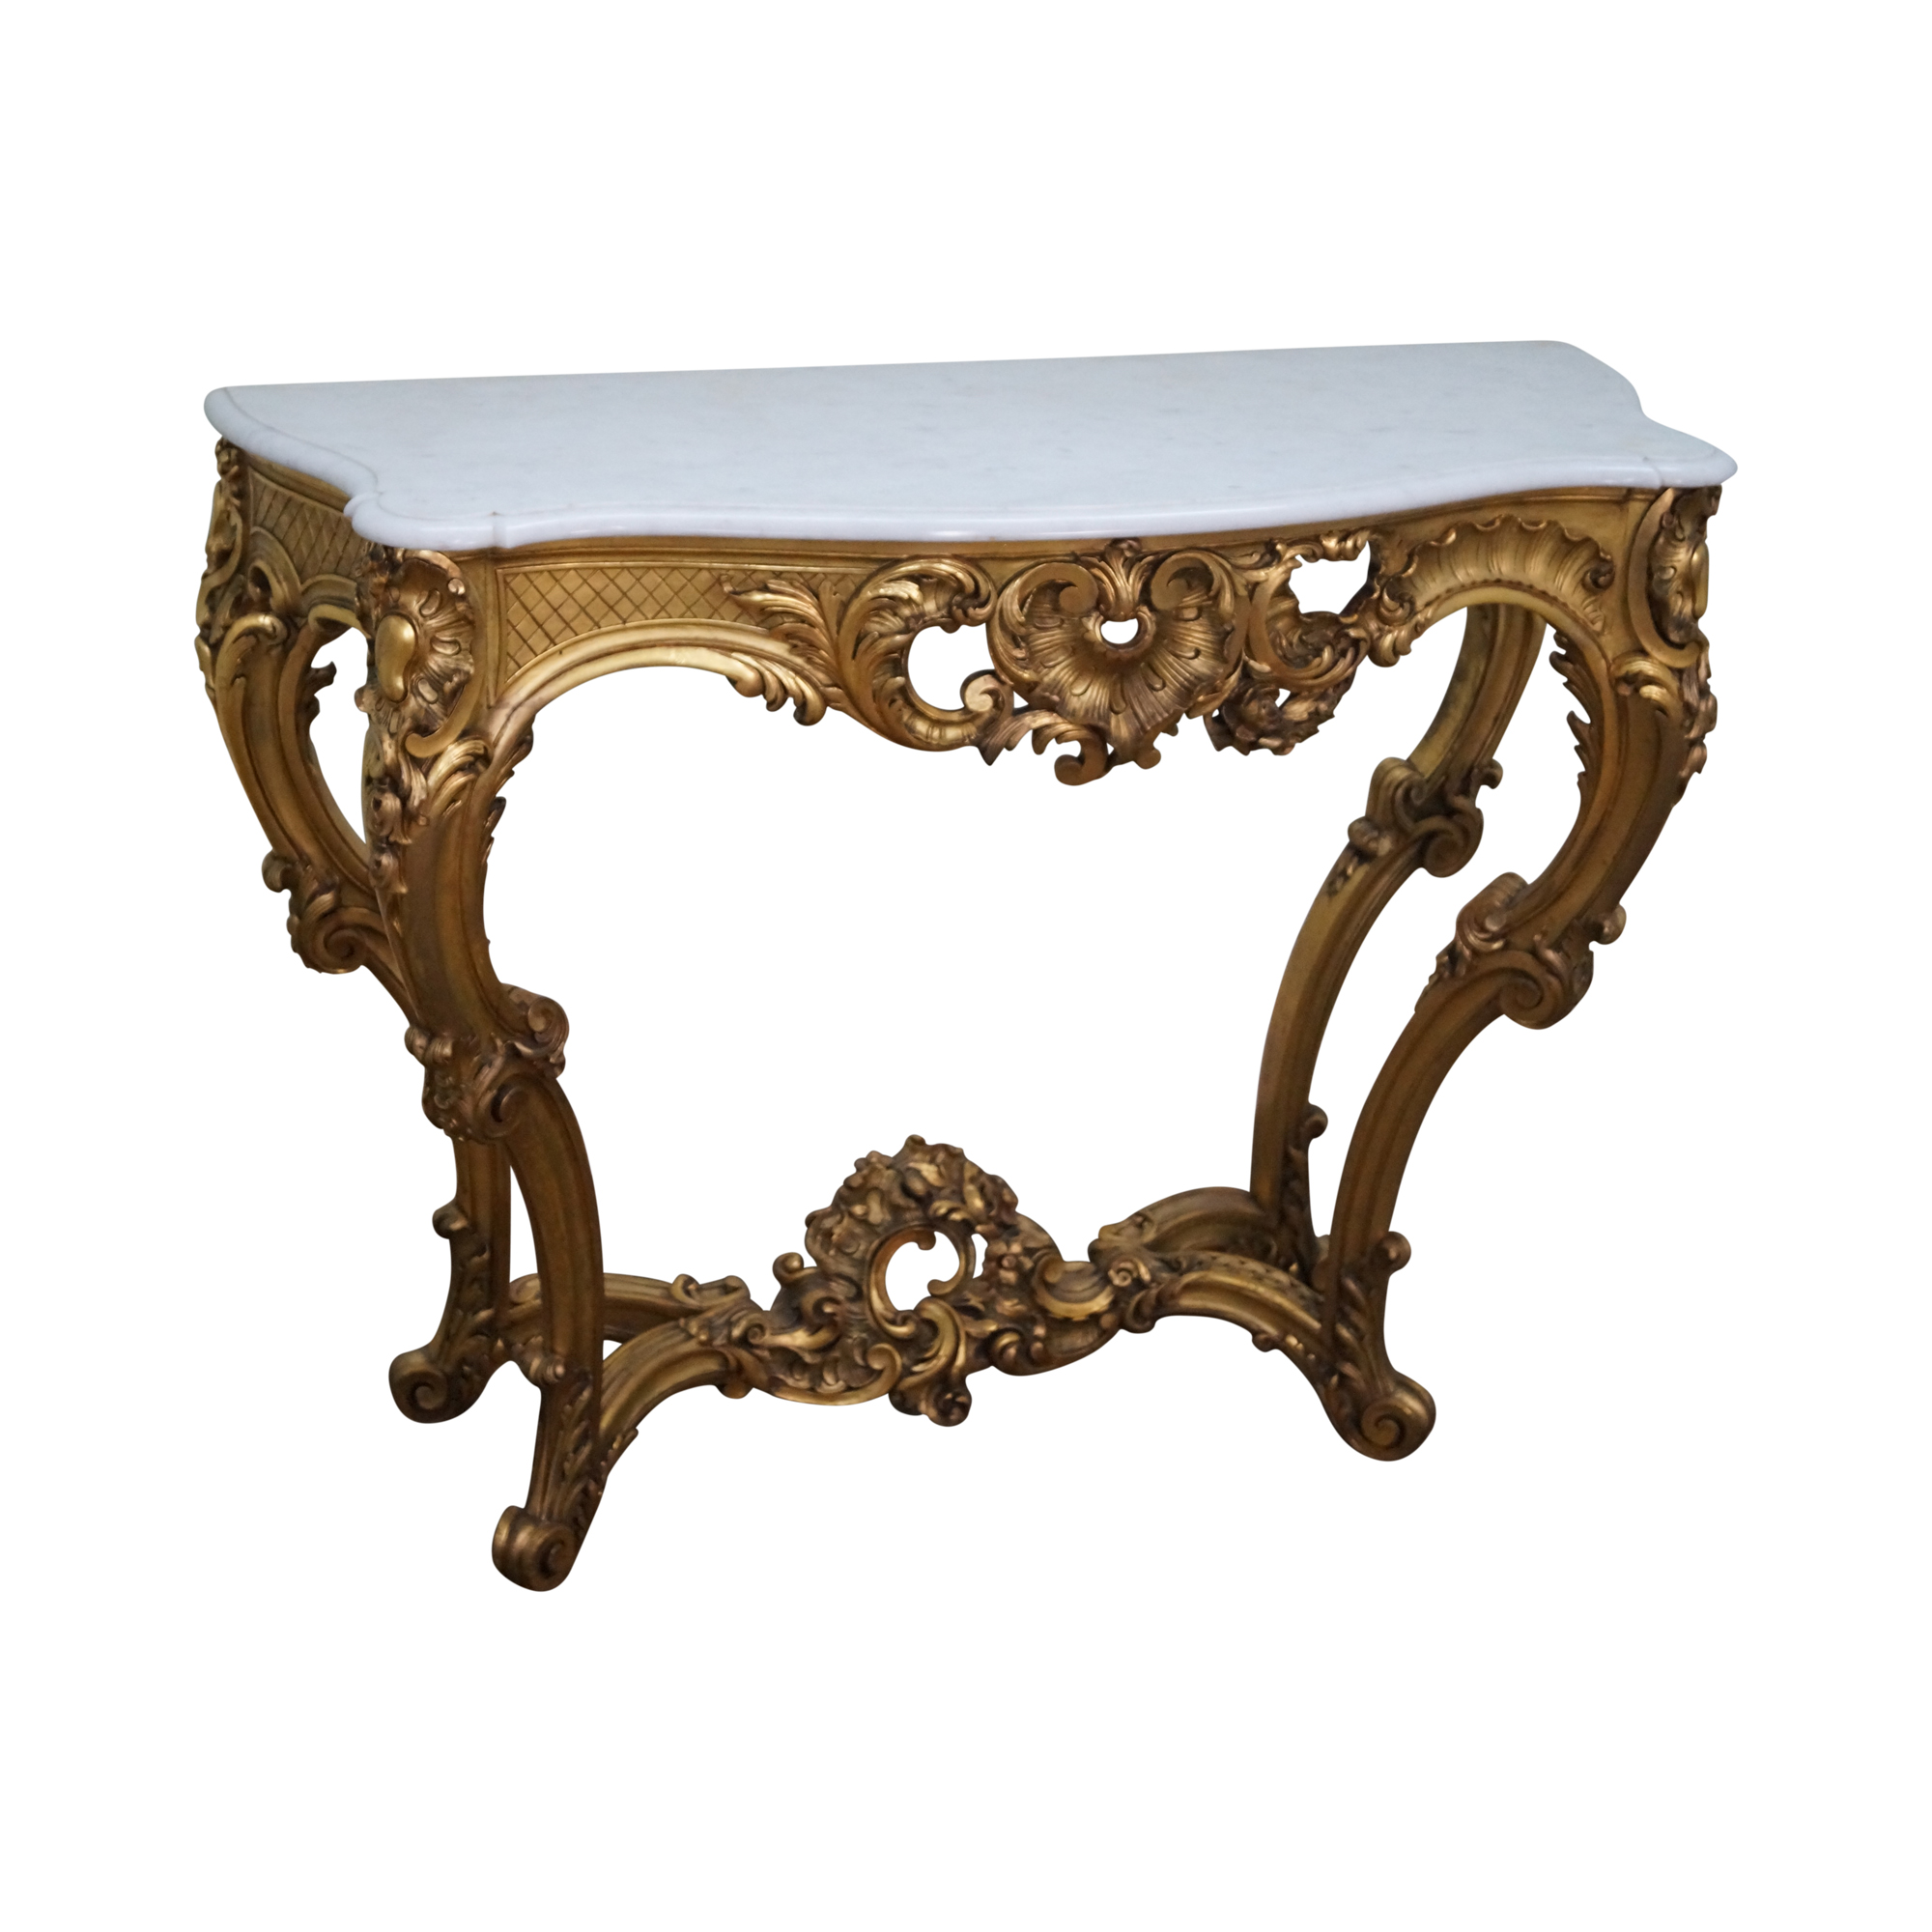 Antique Louis XV Rococo Gilt Wood & Marble Console